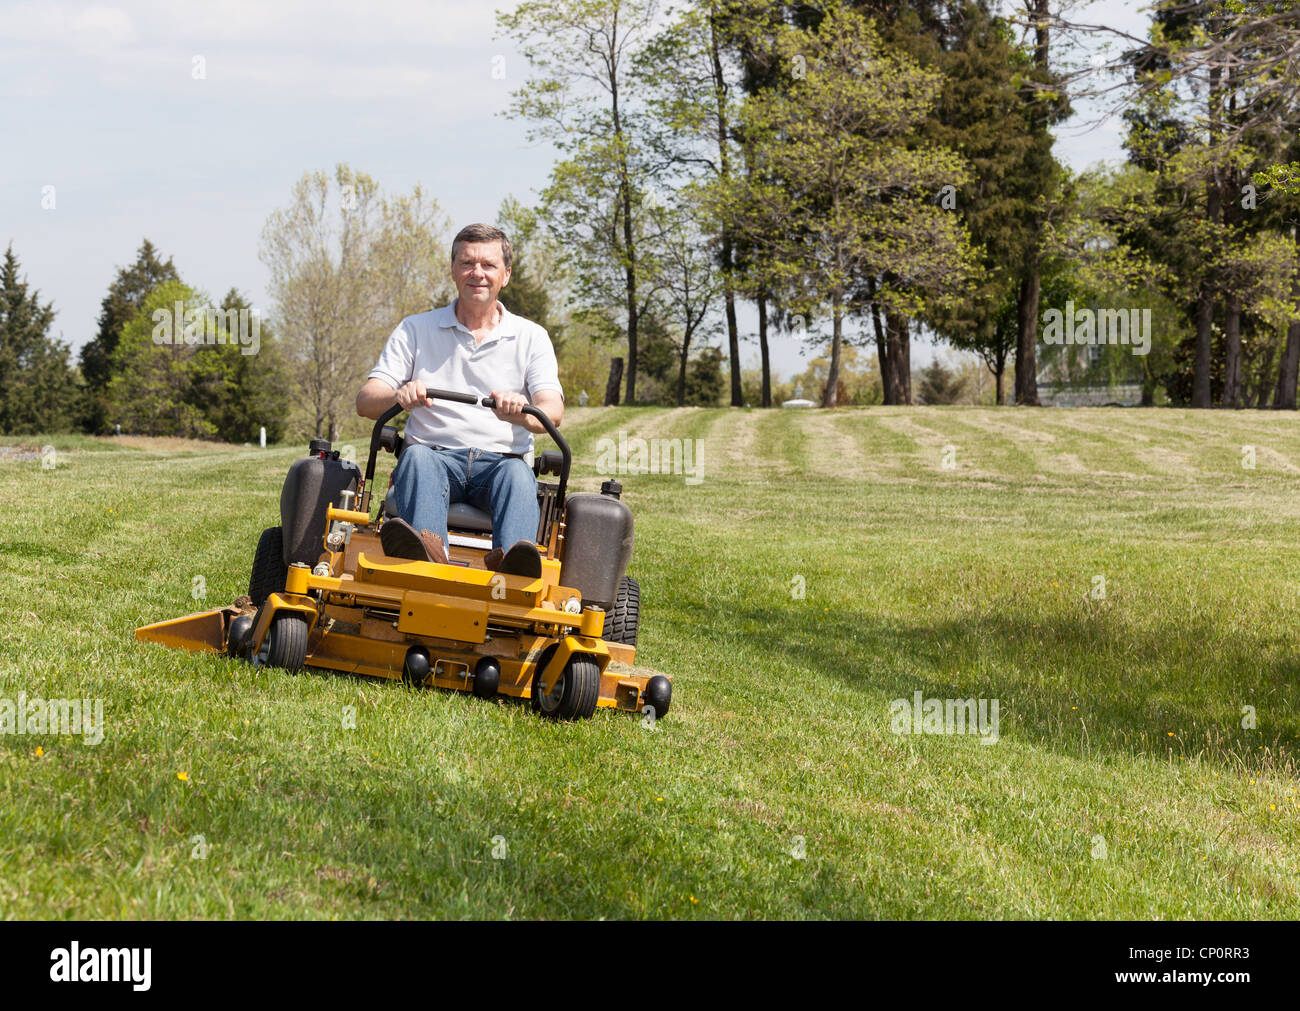 Senior retired male mowing the lawn and cutting the grass on a large lawn using yellow zero-turn ride on lawnmower - Stock Image